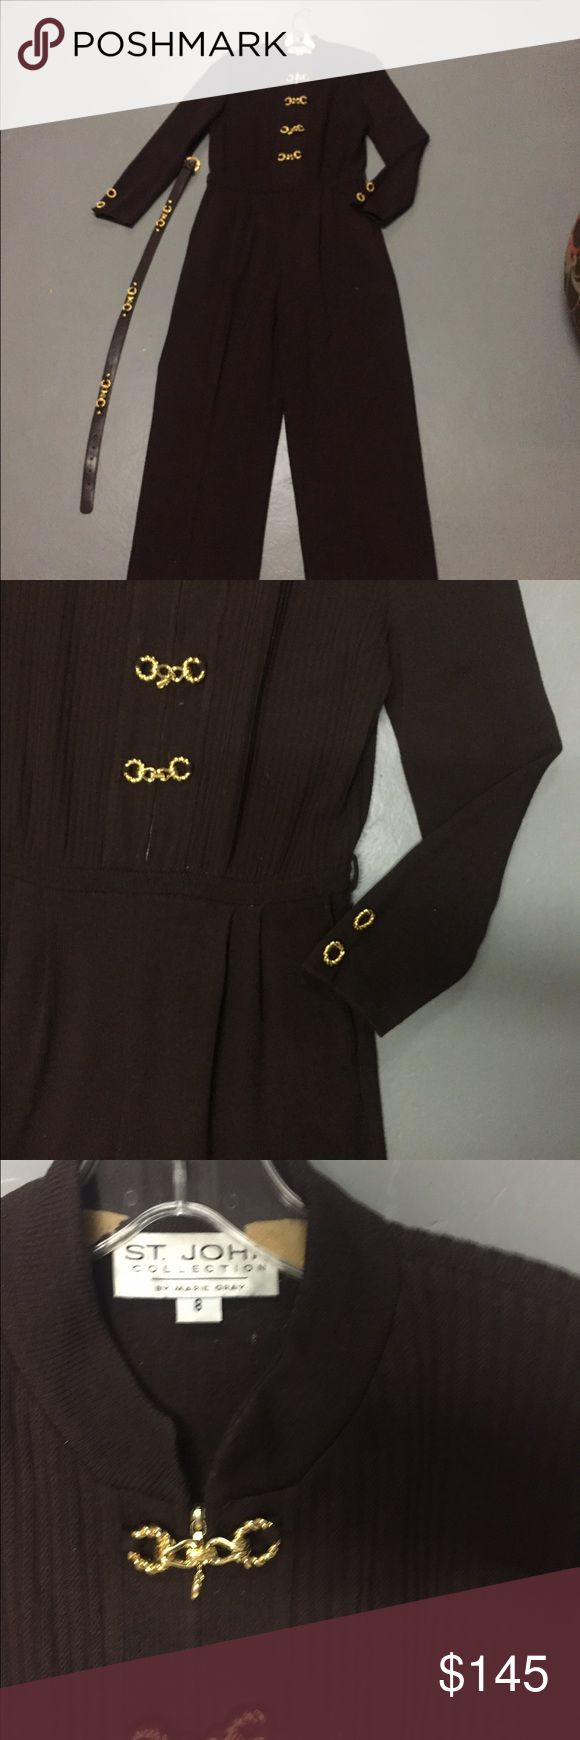 St John Collection Brown One Piece W/ Belt Adorable St. John collection Marie gray brown one piece very pretty on comes with matching Belt St. John Dresses